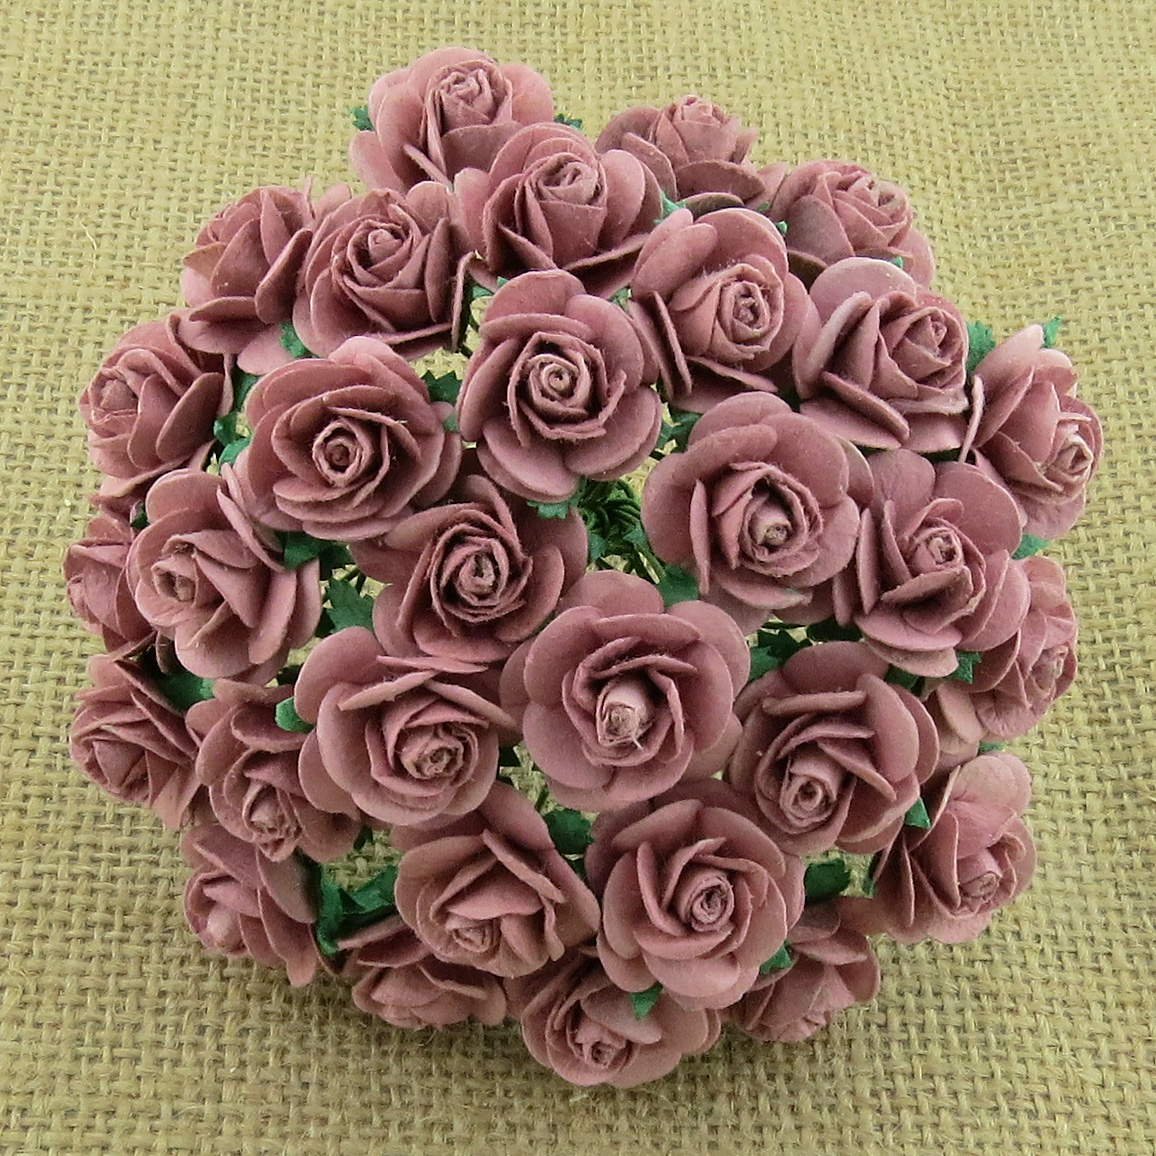 100 Dusky Pink Mulberry Paper Open Roses Saa 489 Promlee Flowers